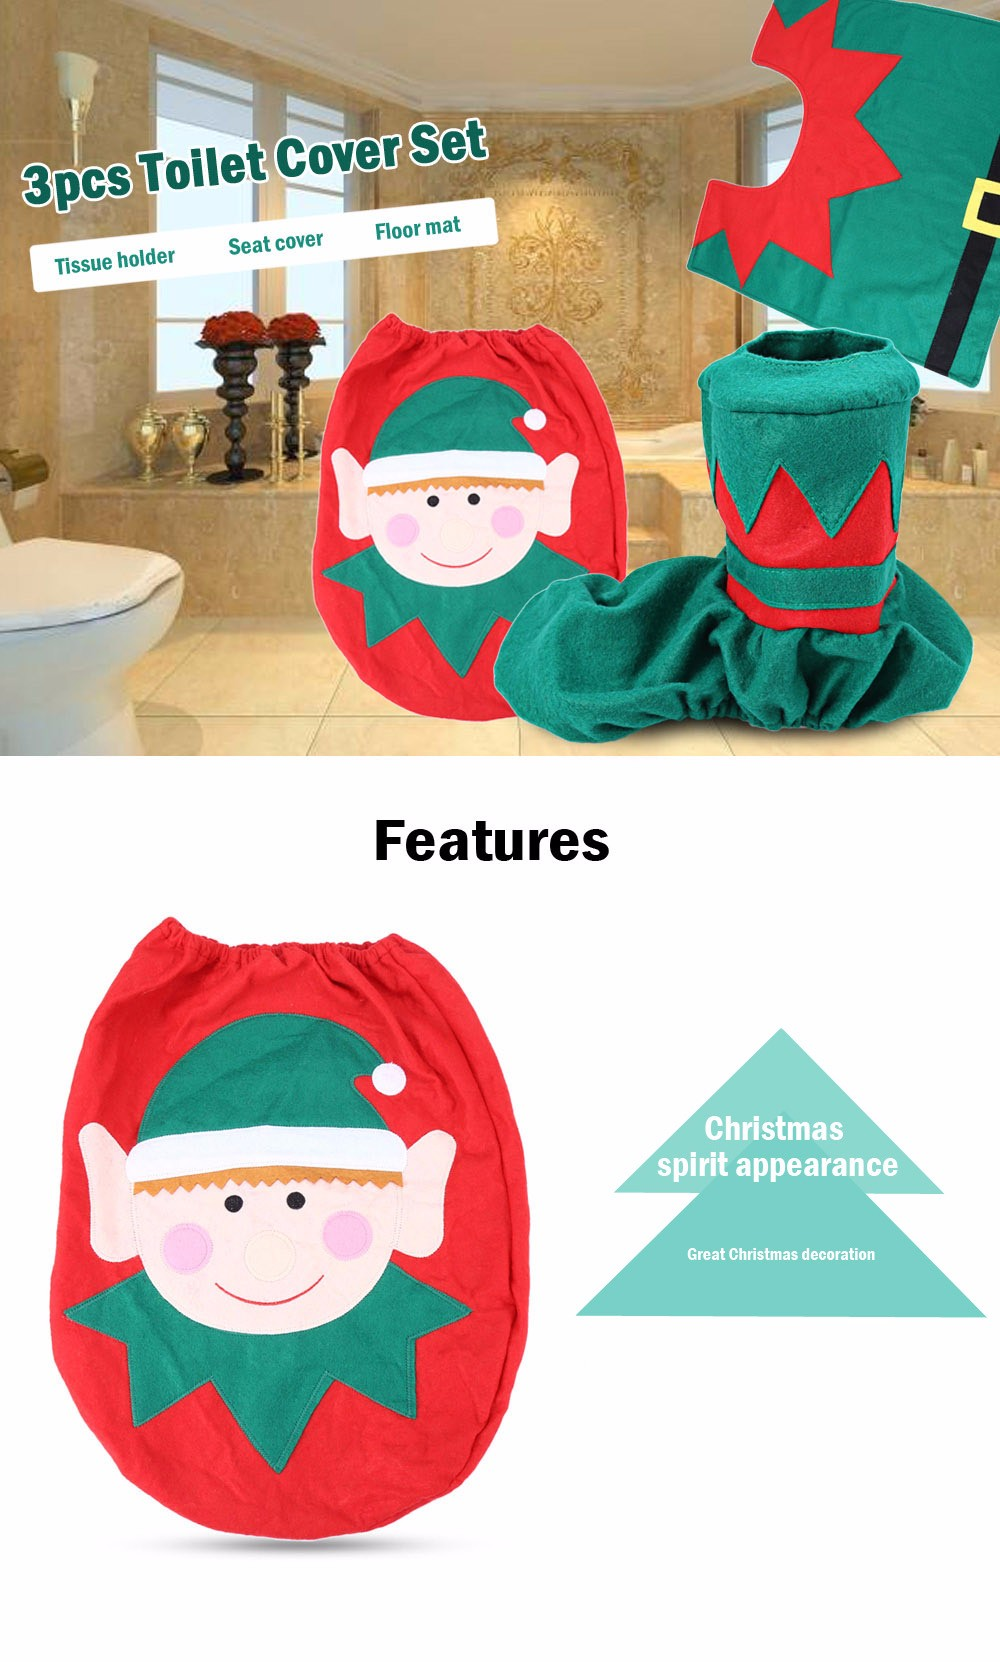 Christmas Spirit Toilet Set Seat Cover Rug Bathroom Decoration